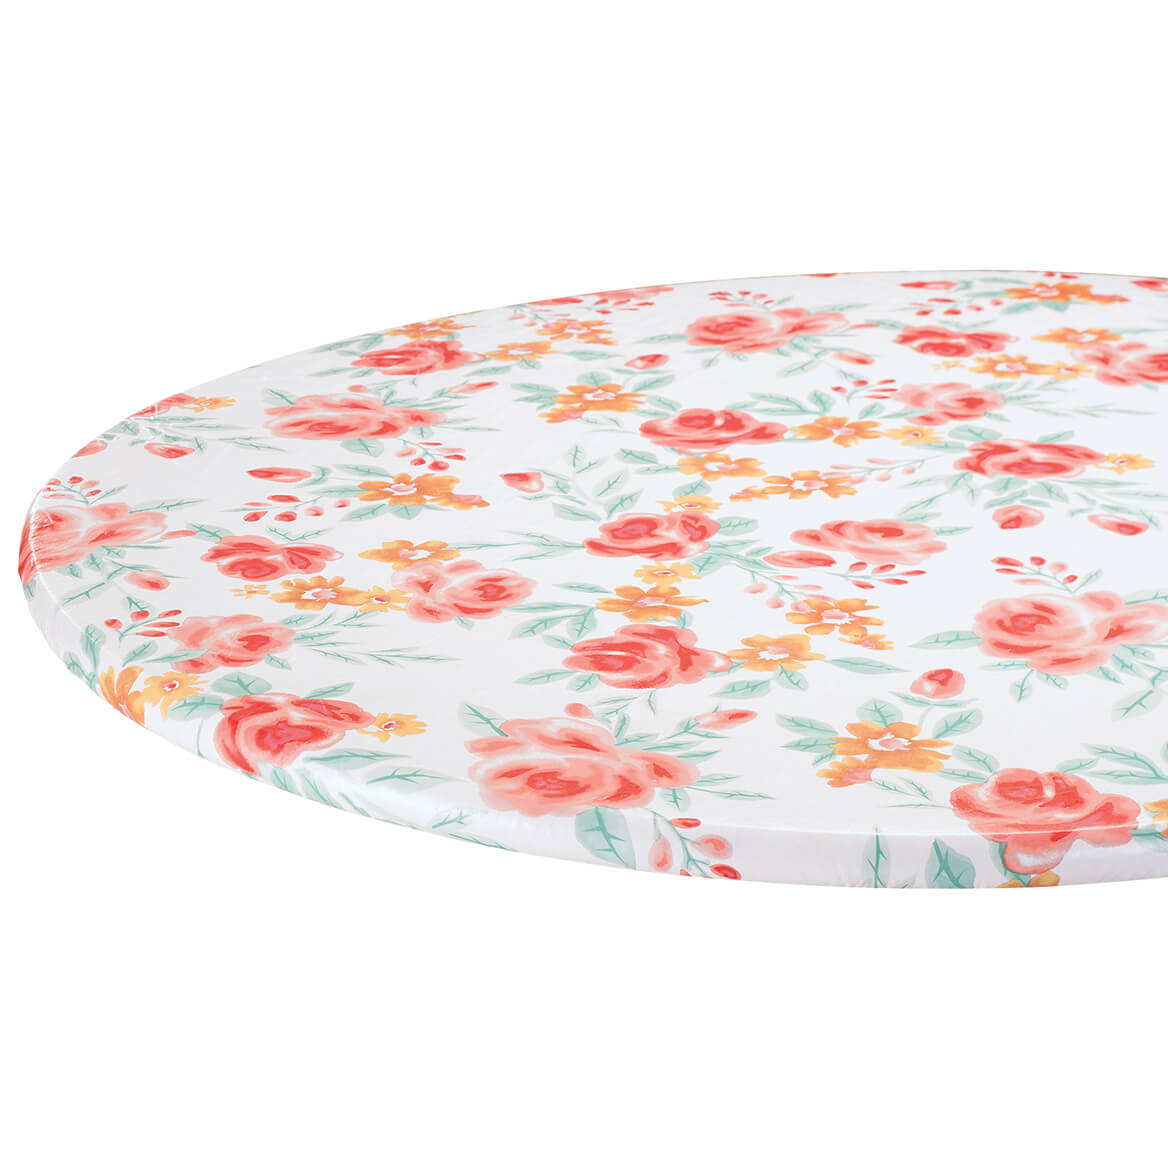 Watercolor Vinyl Elasticized Tablecover by HomeStyle Kitche-366971